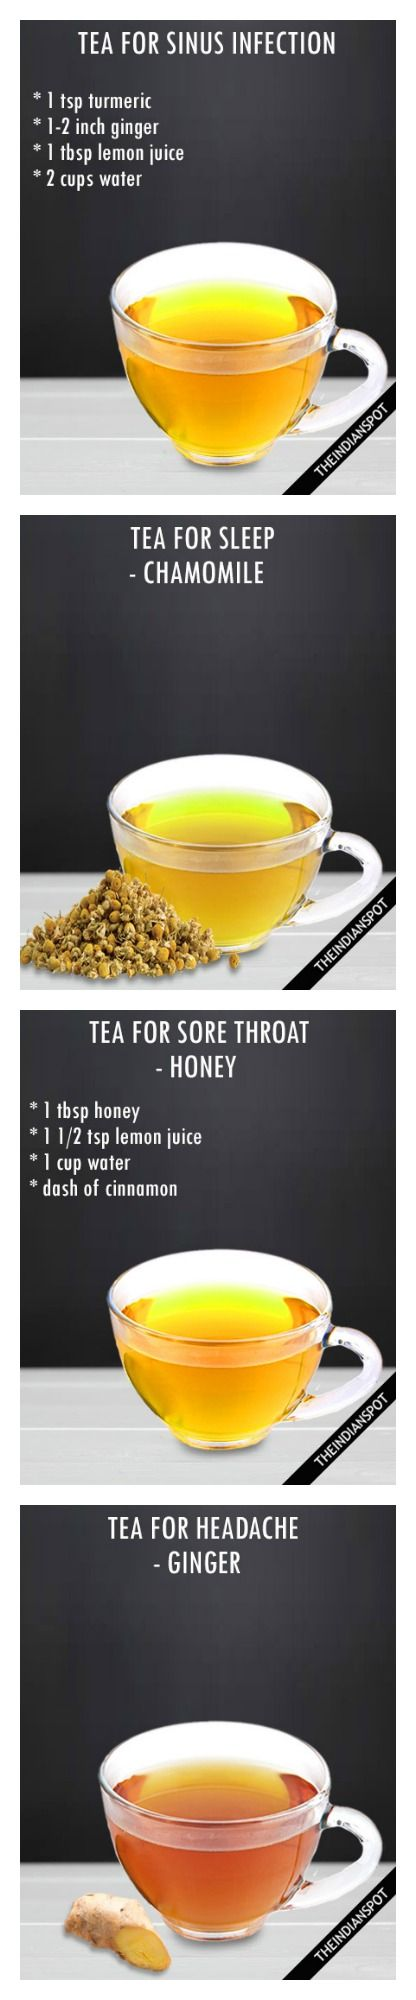 8 BEST HEALING TEA RECIPES for sinus, sore throat, headache and more